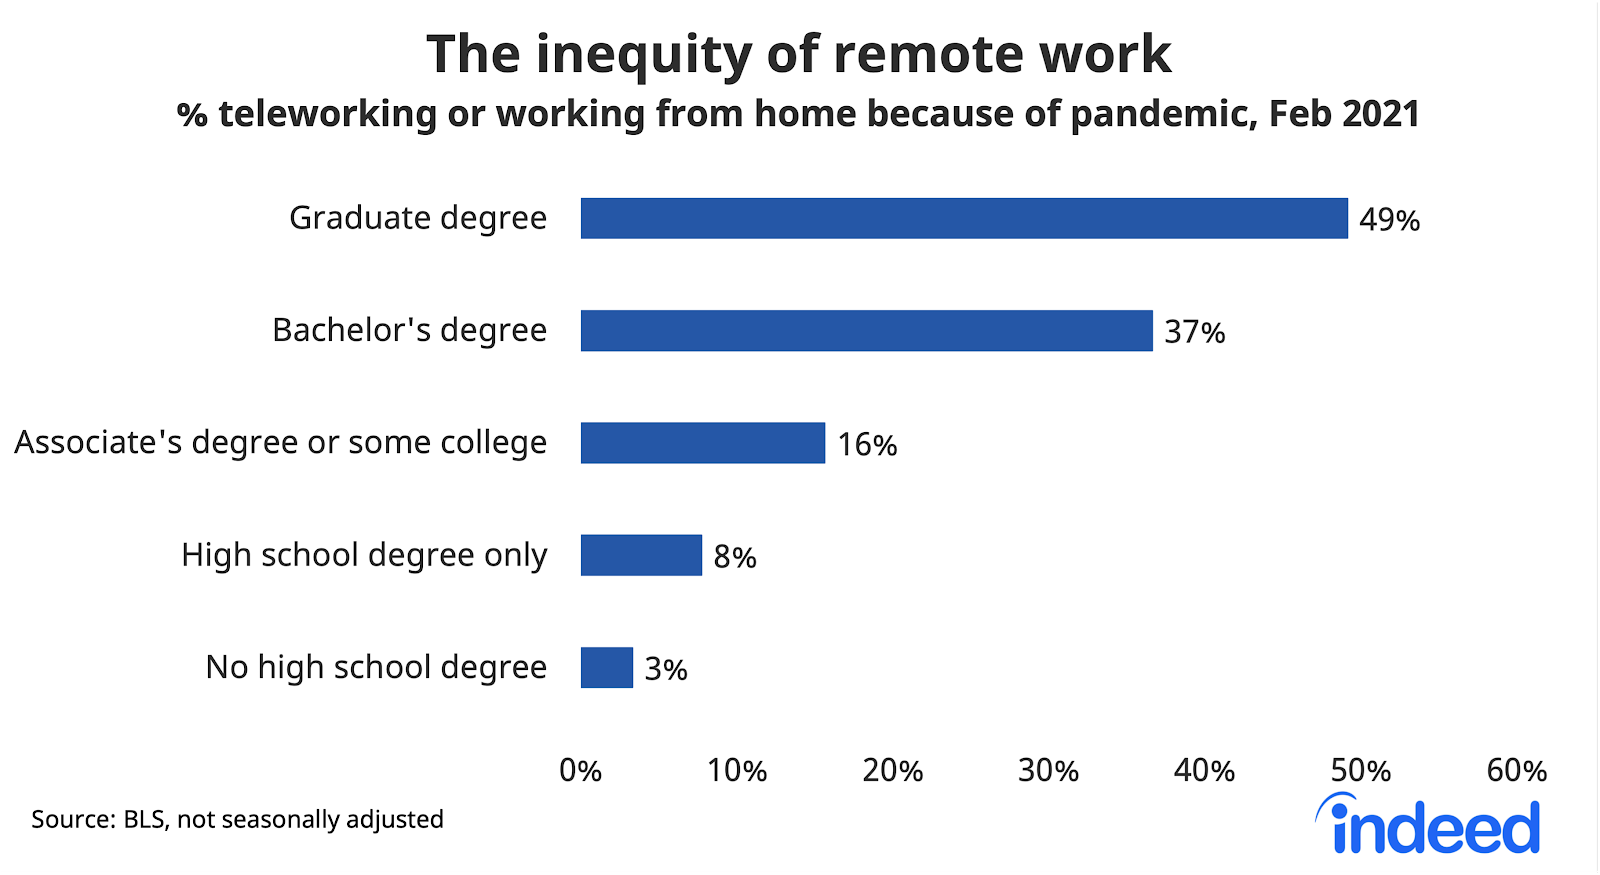 Bar graph showing the inequity of remote work